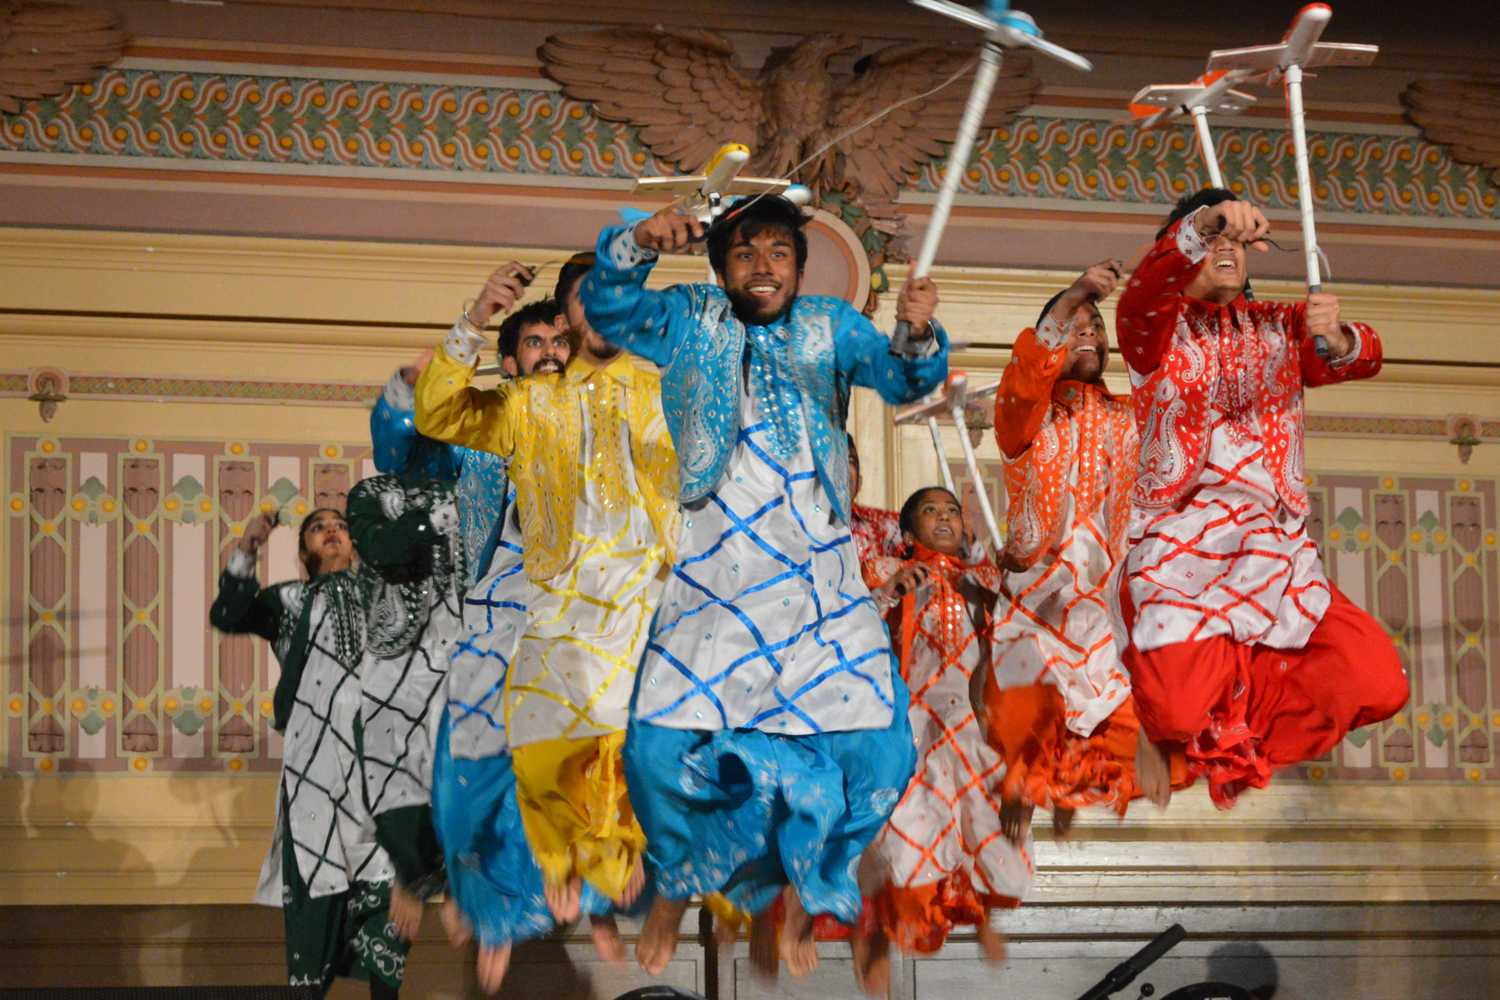 Pitt's First Class Bhangra dance group performs at Saturday evening's Dhirana dance competition. (Photo by Janine Faust | Contributing Editor)